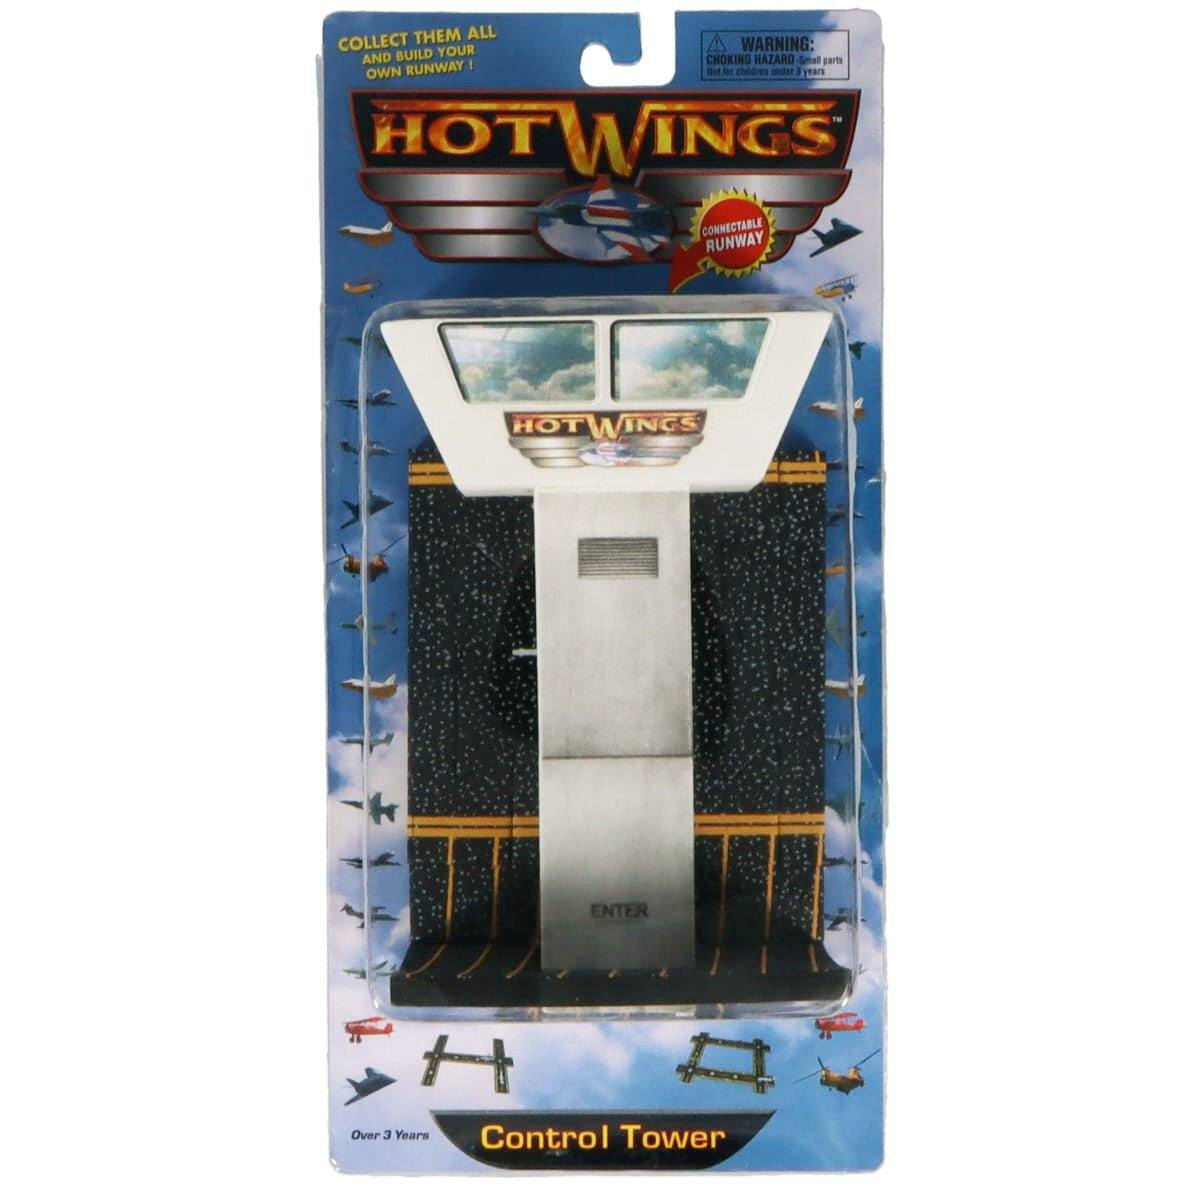 Hot Wings Control Tower with Connectible Runway